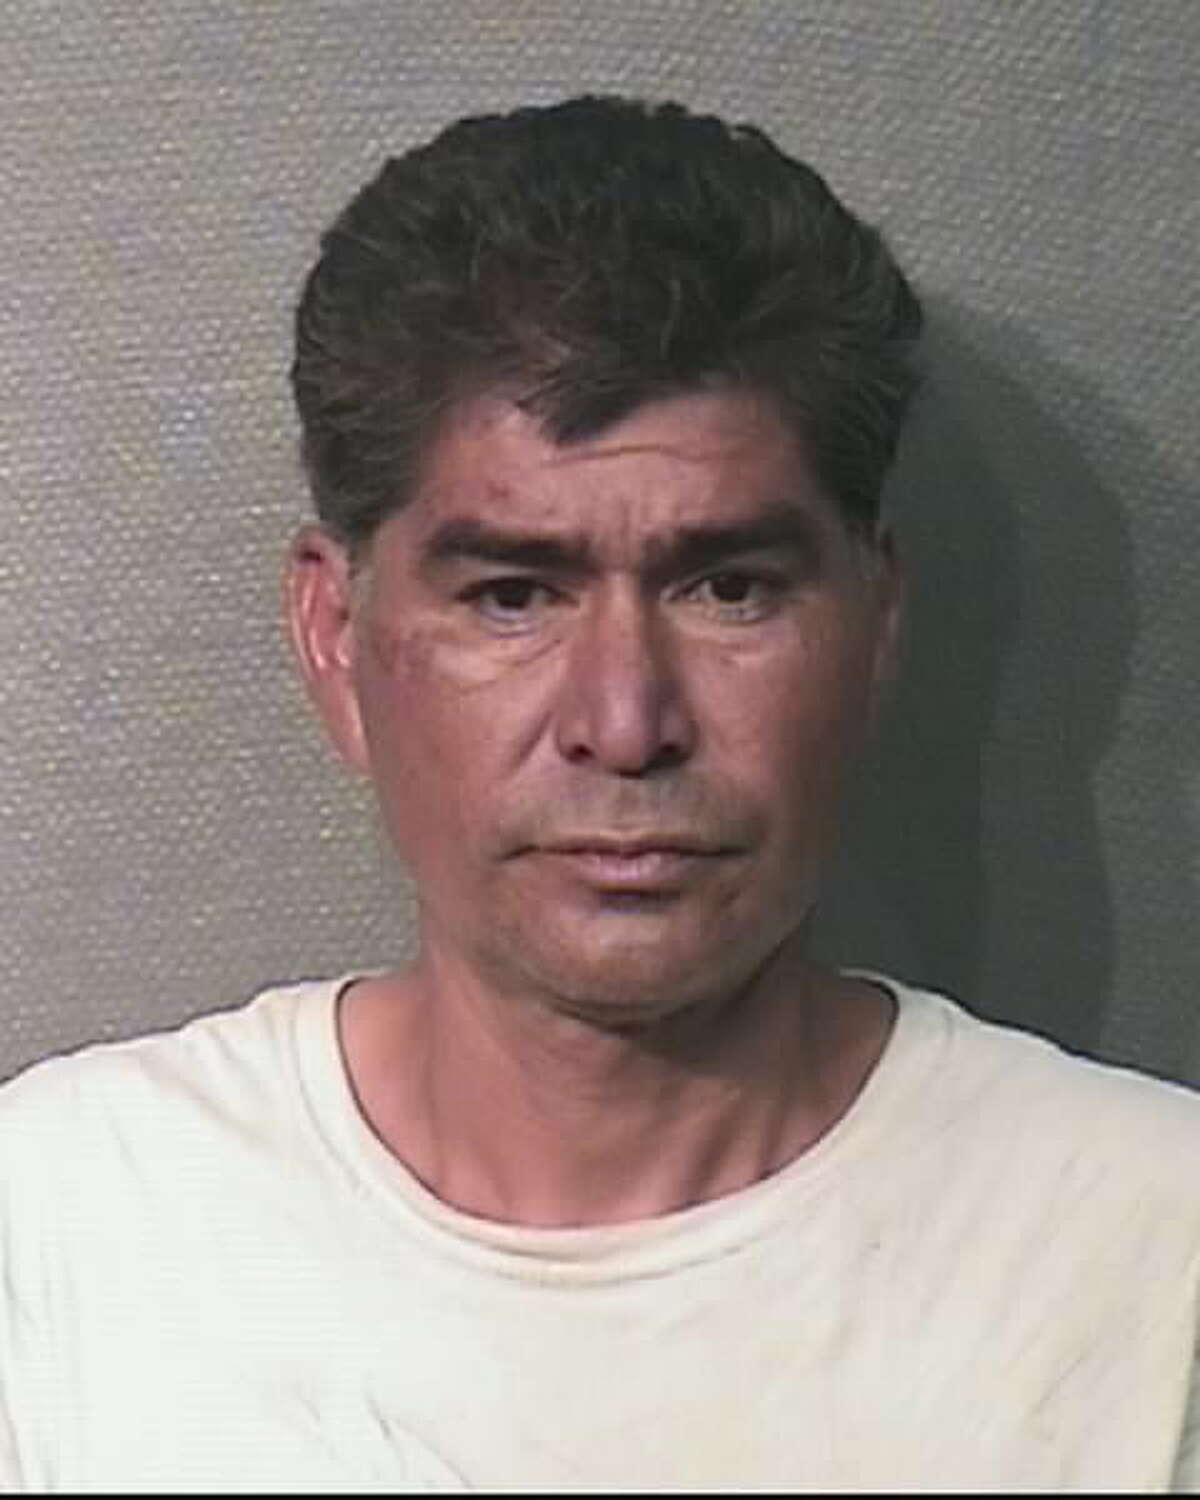 Miguel Angel Vazquez was arrested in August 2018 on athird charge of DWI.